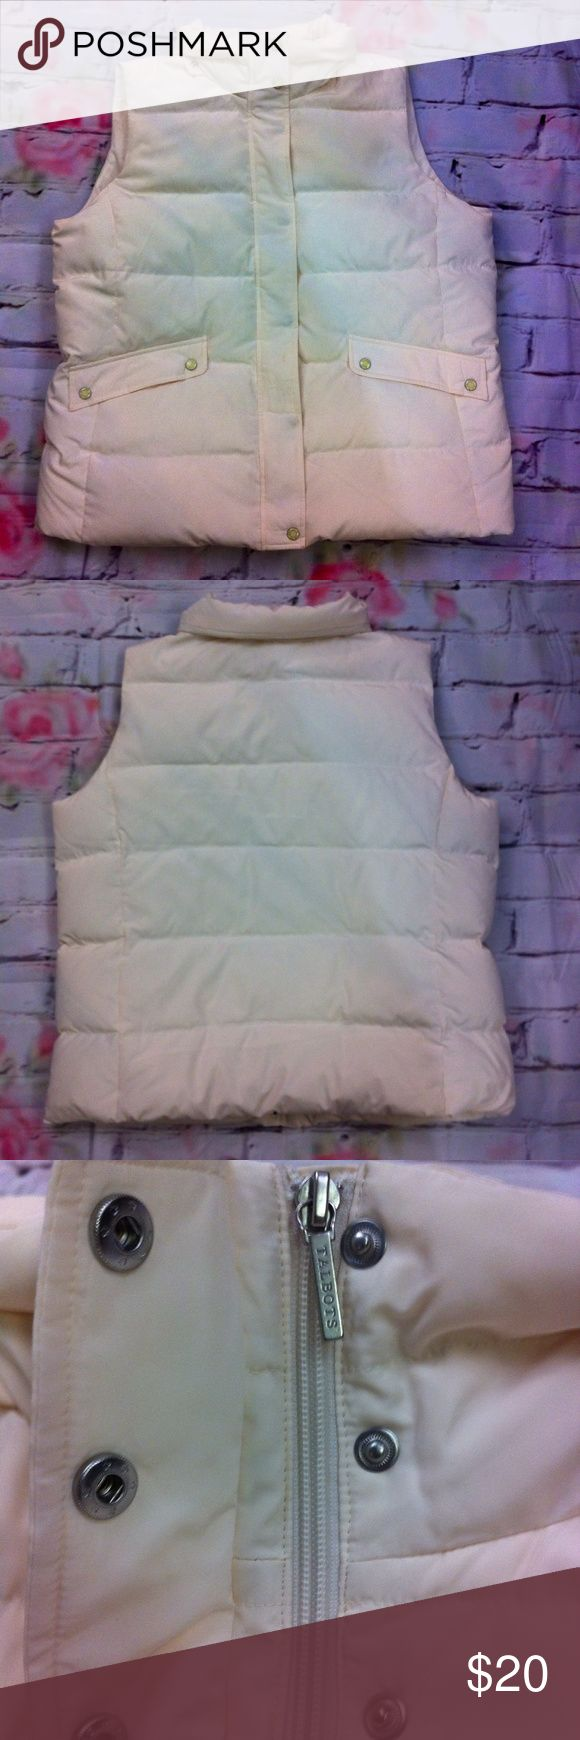 "Talbots down feather puffer vest Talbots puffer vest - size 1x (14-16) - cream - zip / button snap front - pocketed - polyester with down / feather fill - chest 50"" - length 28"" *flawed* missing collar trim and small spot on front Talbots Jackets & Coats Vests"